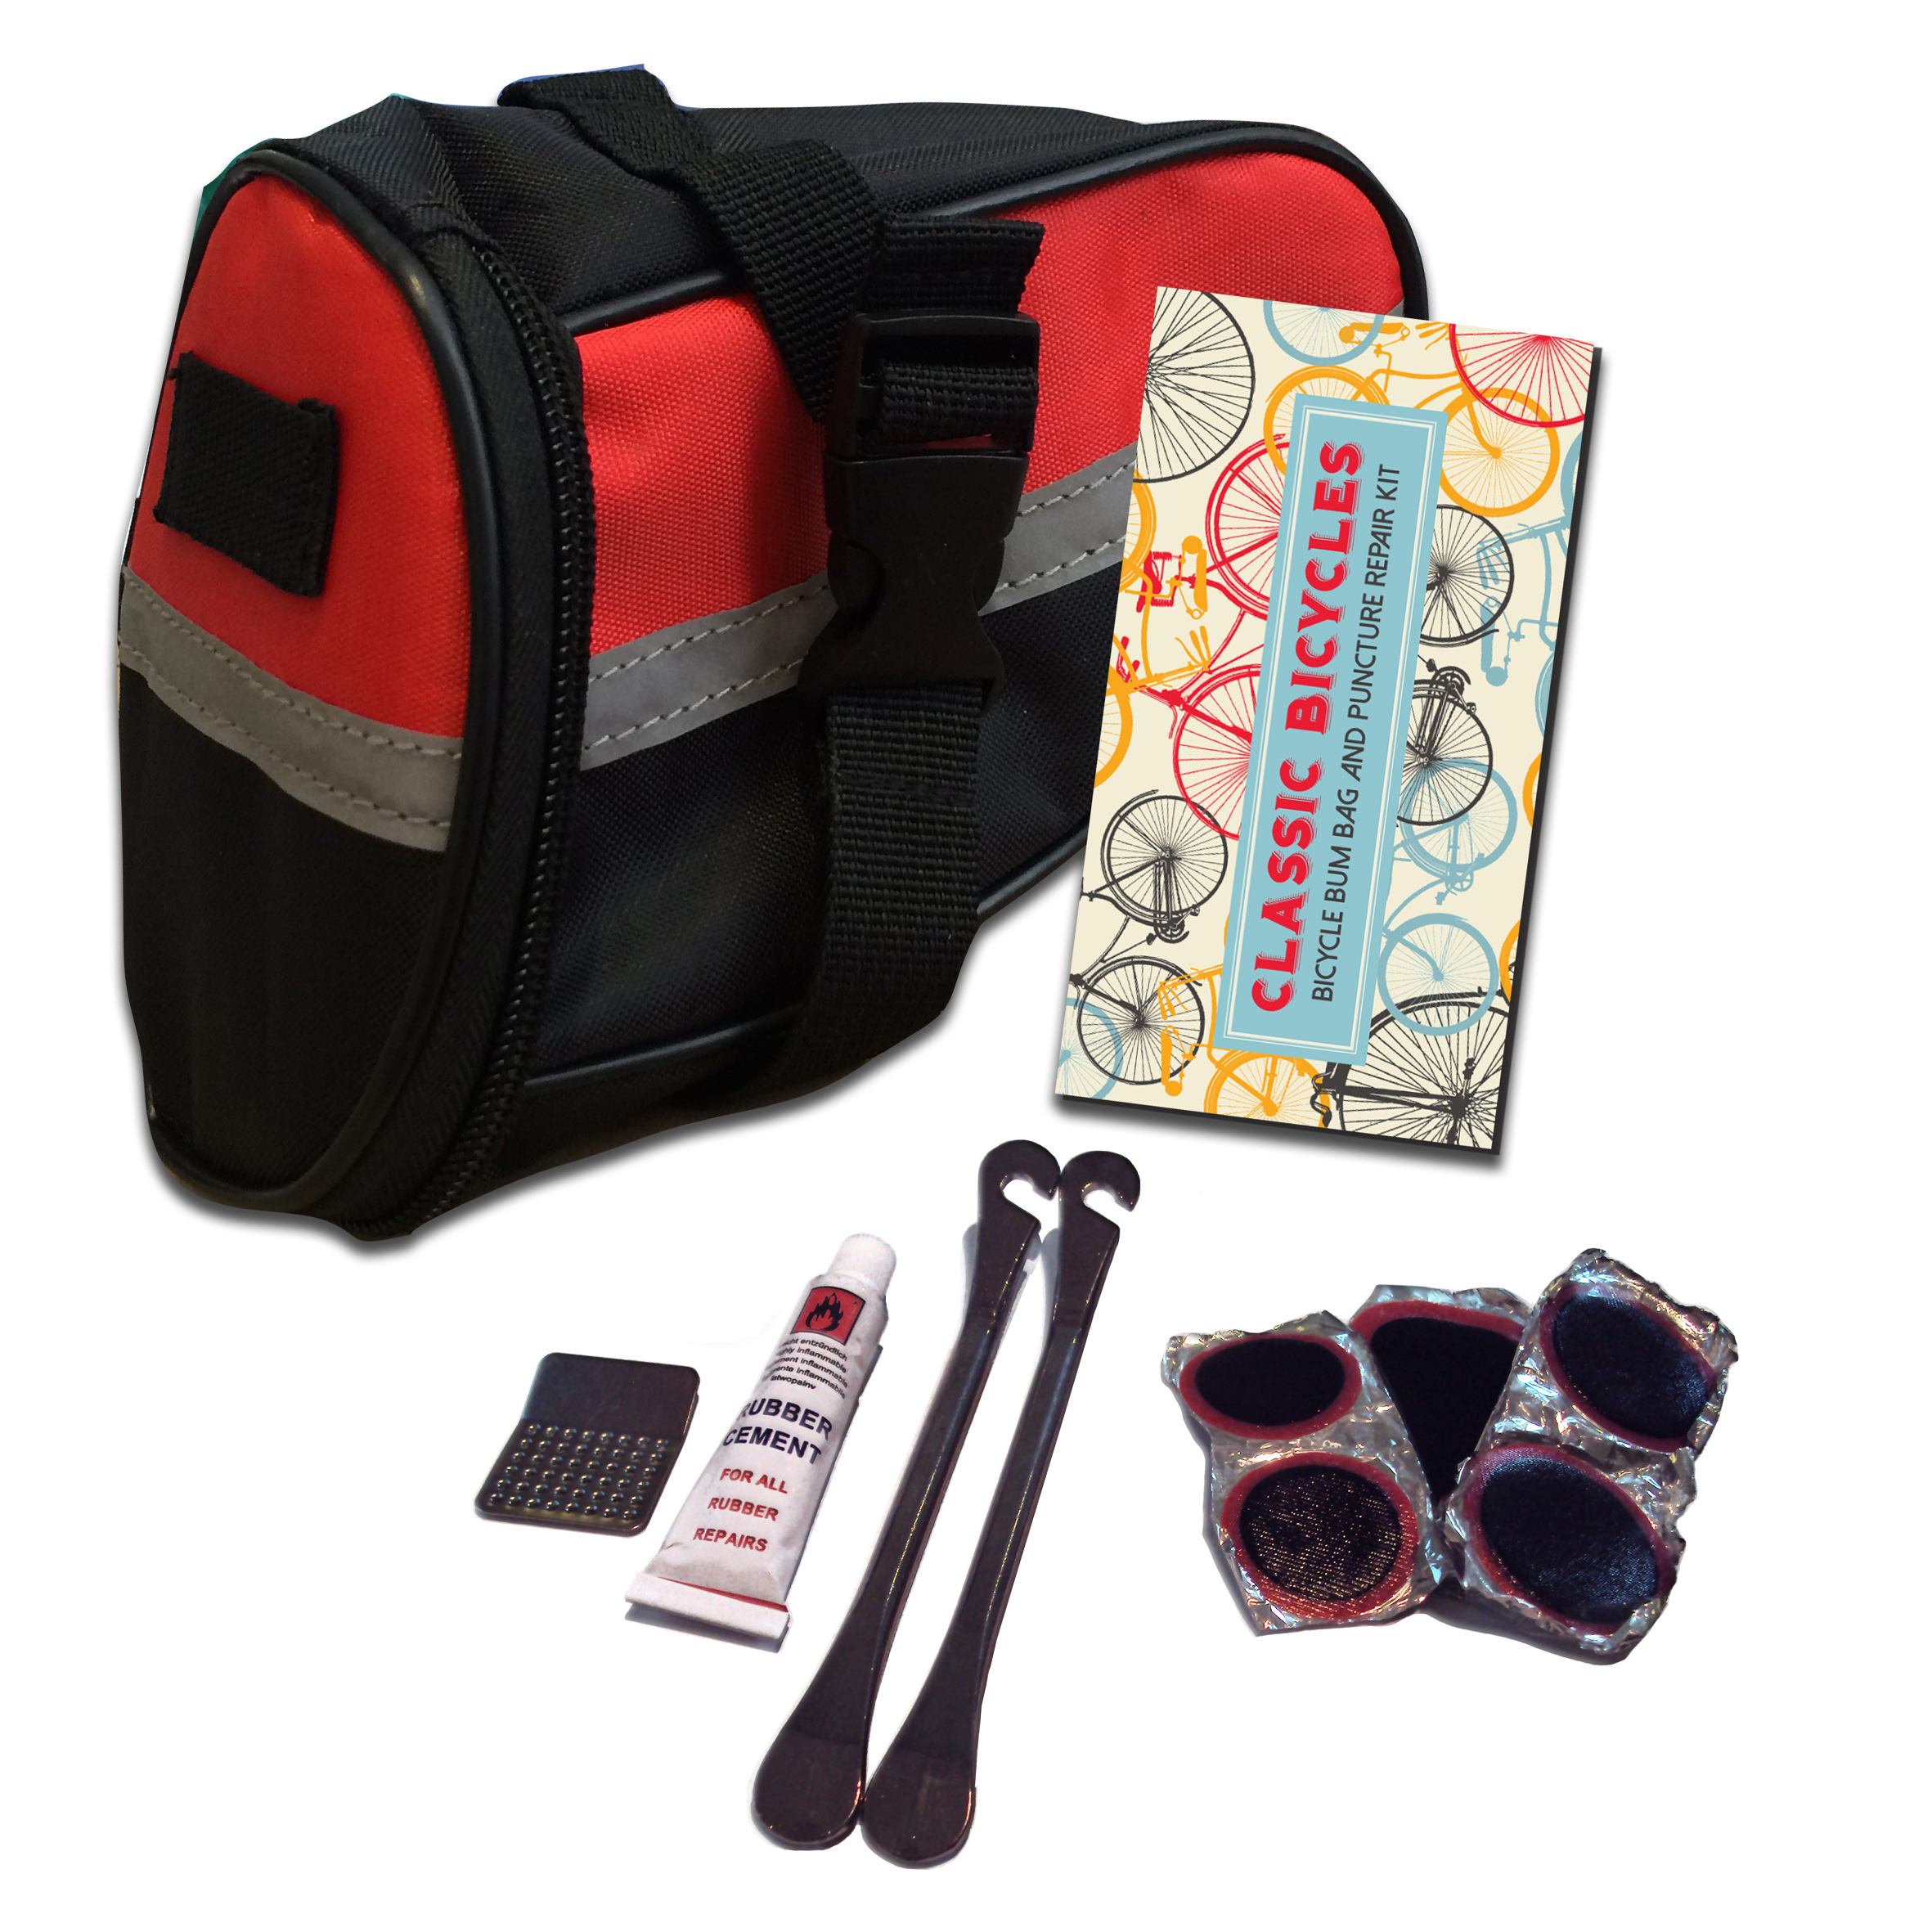 Bum bag & repair kit